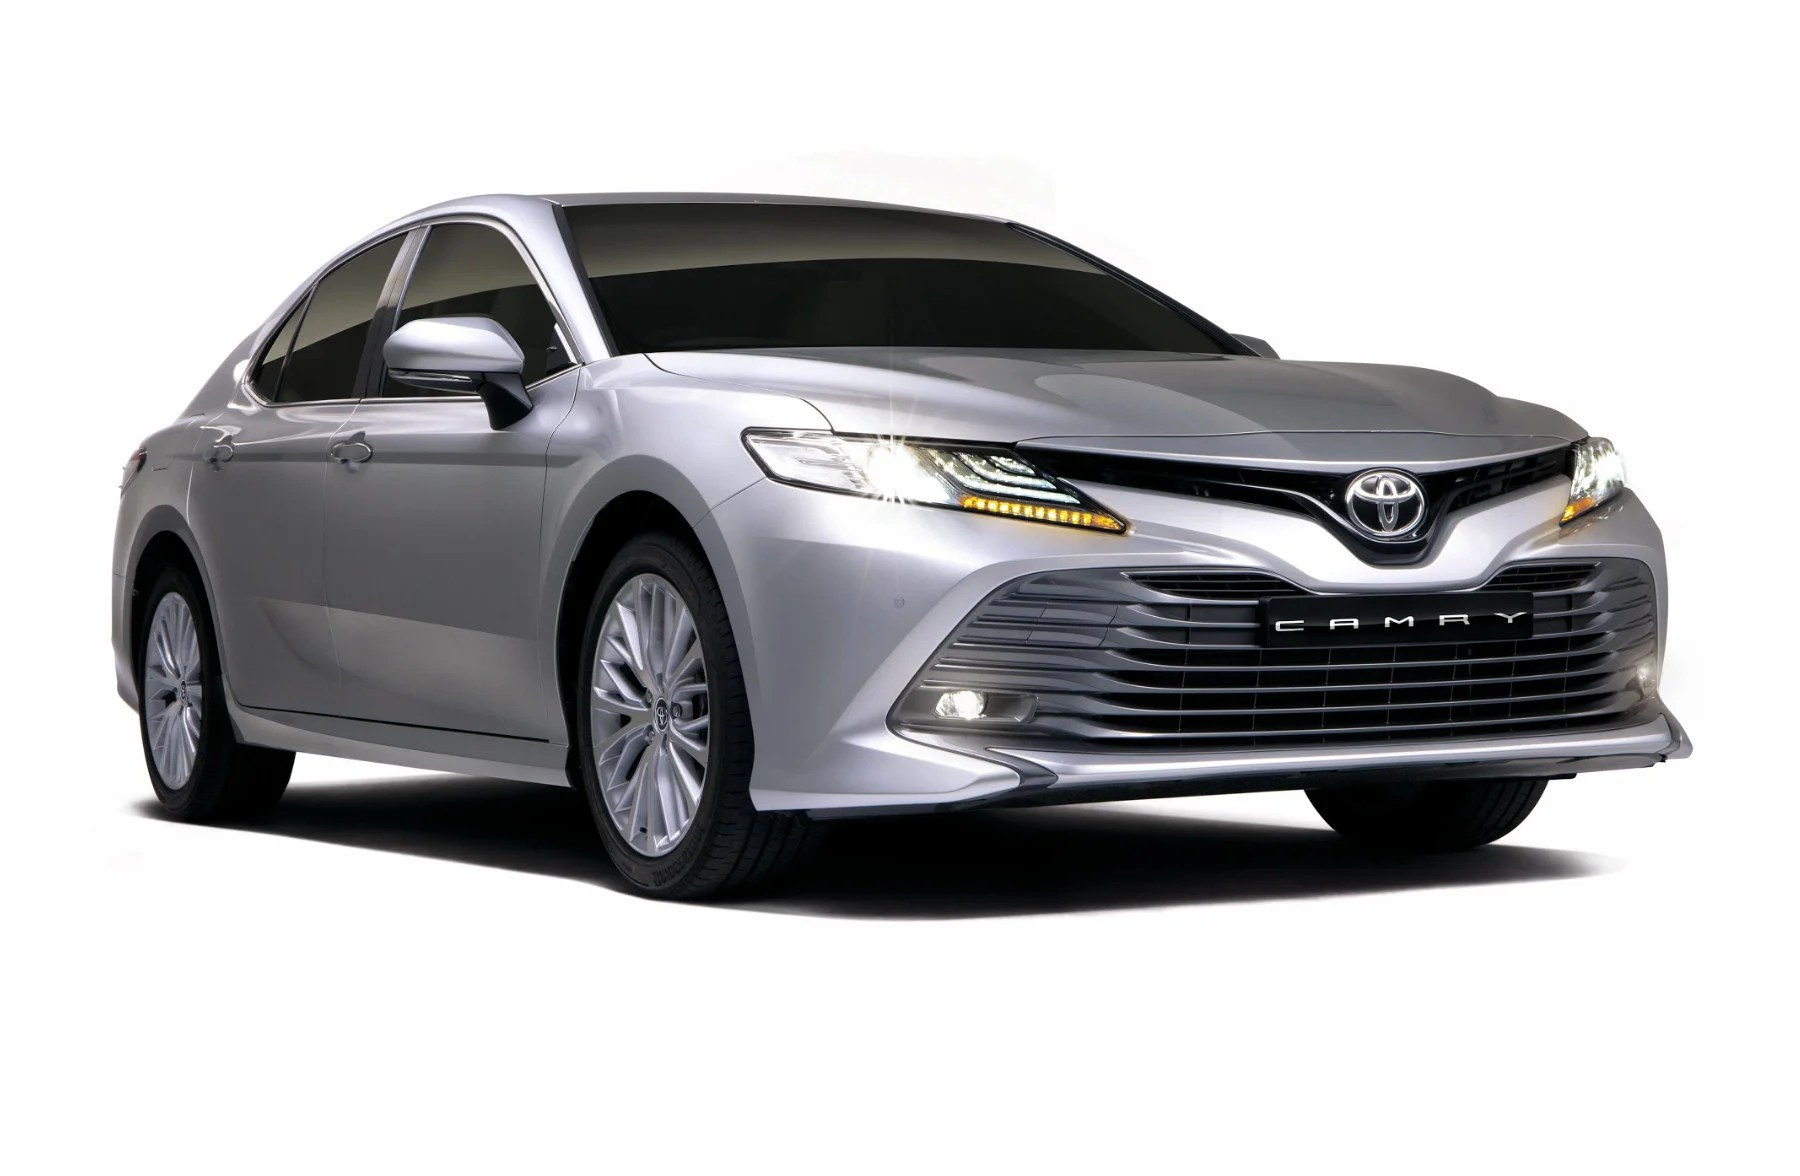 all new camry 2018 philippines buku panduan kijang innova no number coding from dec 24 to jan 2 for private